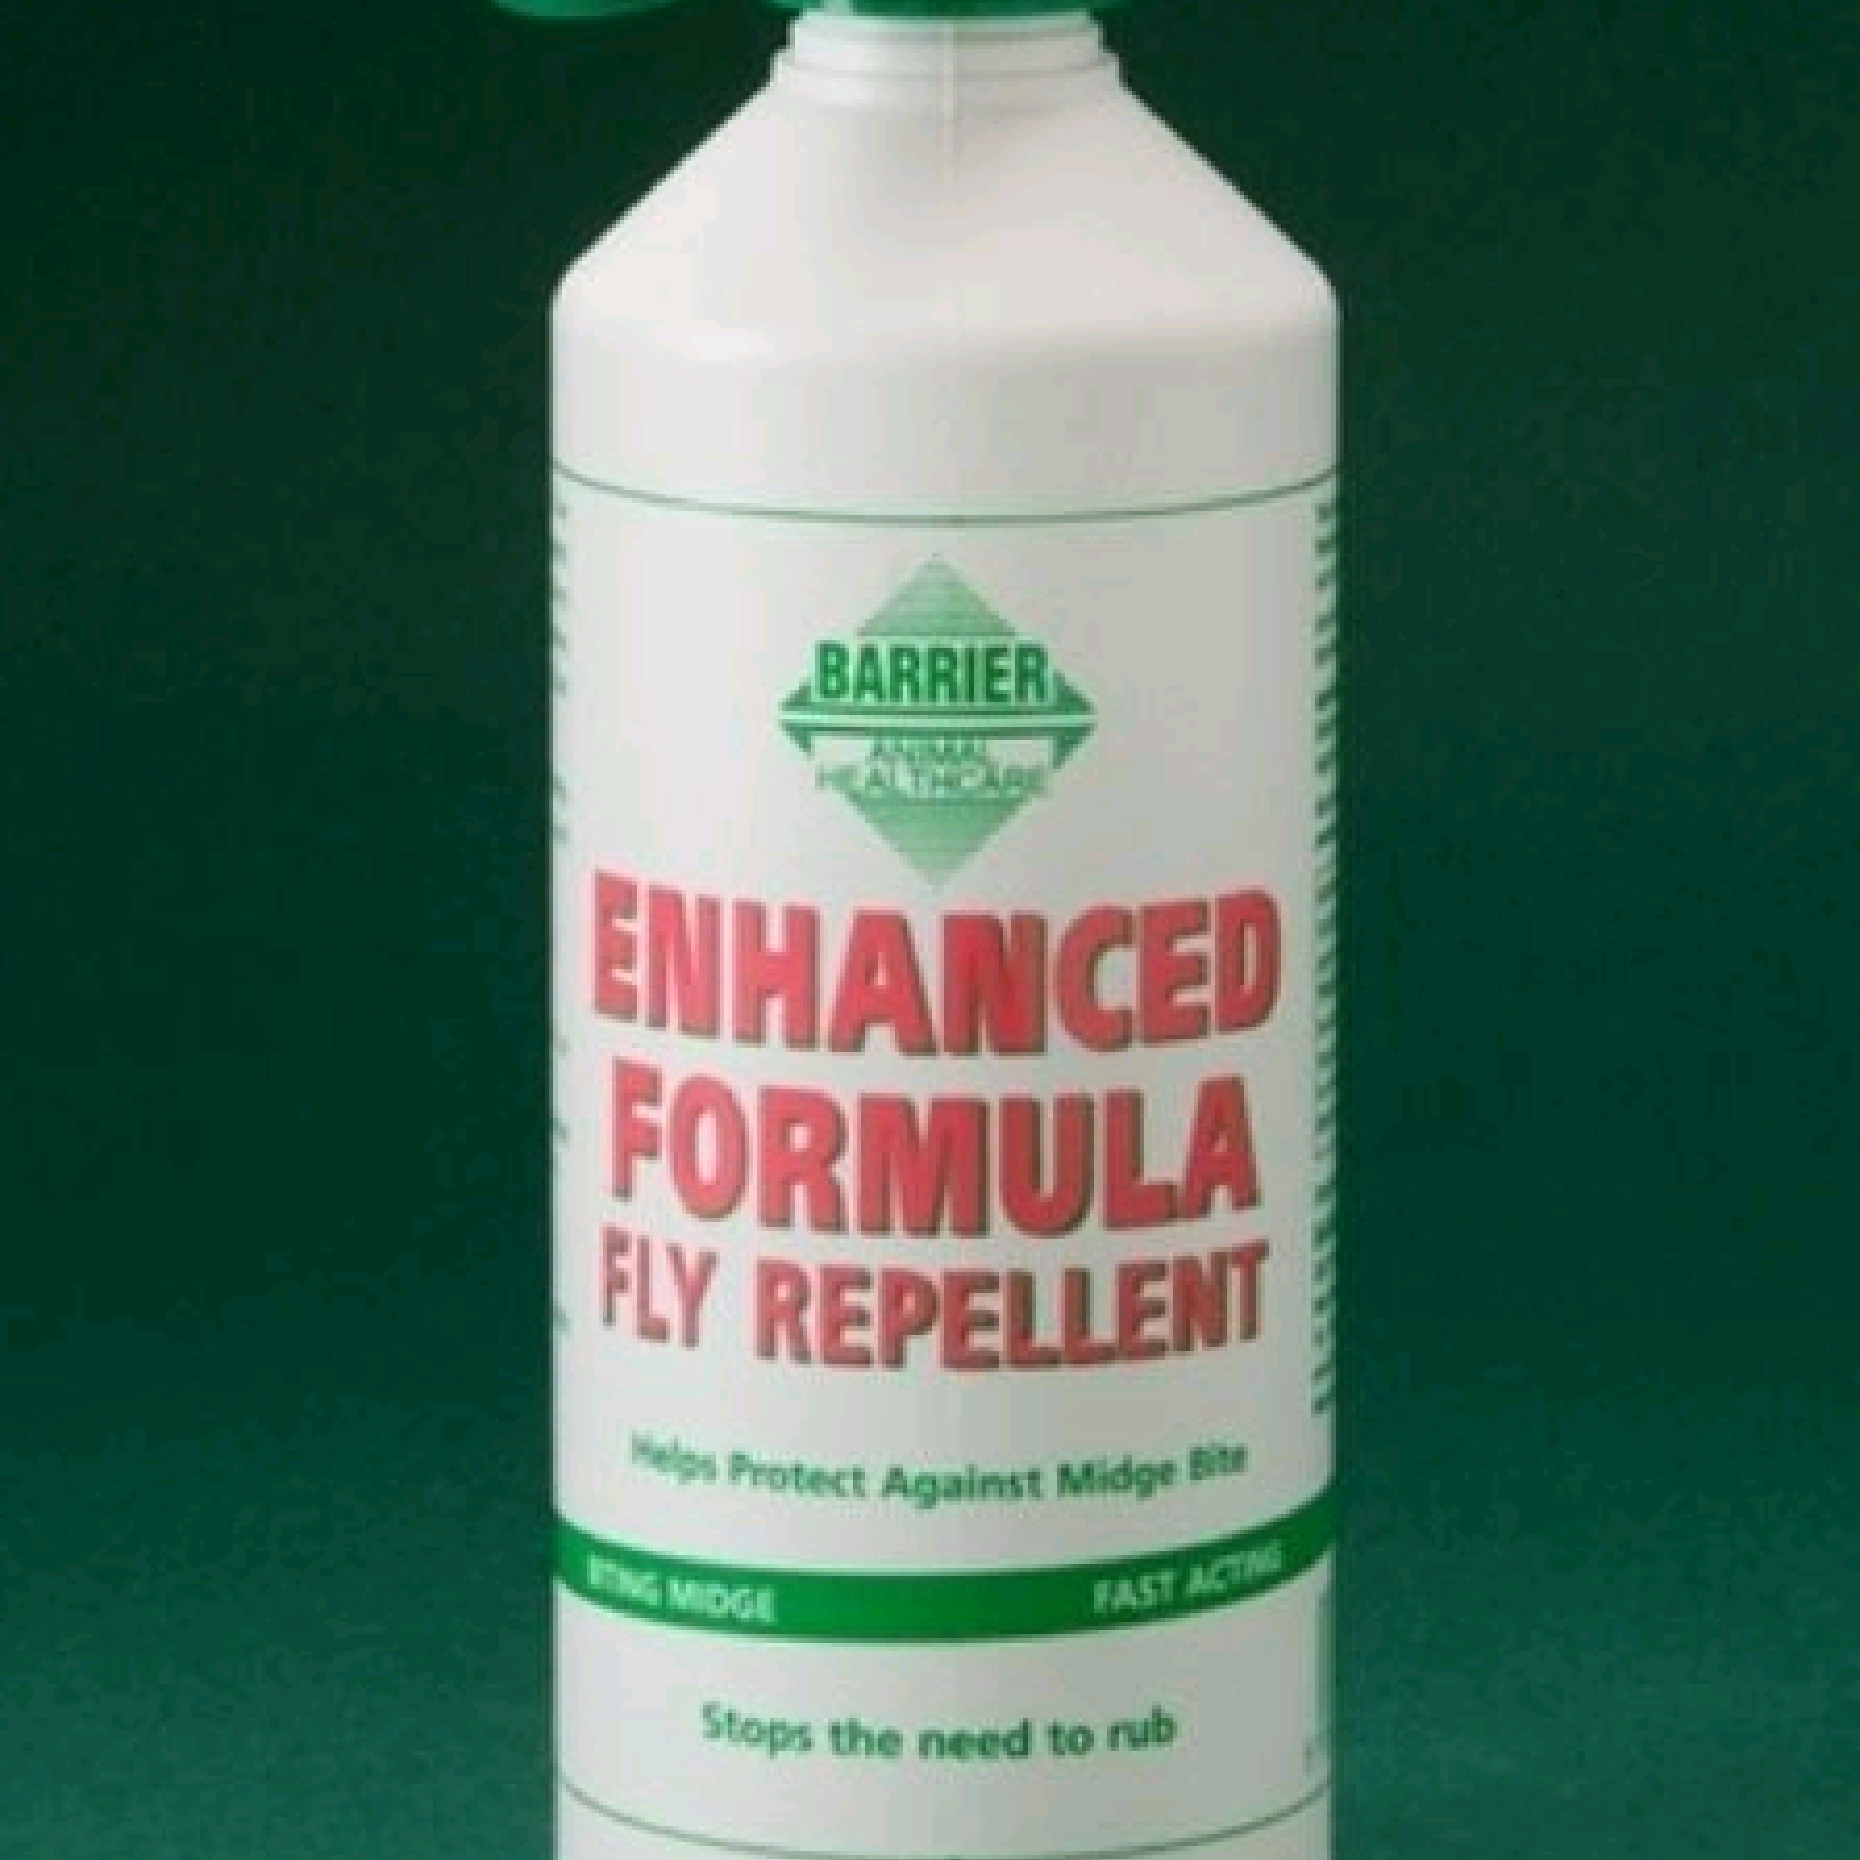 Barrier Enhanced Formula Fly Repellant